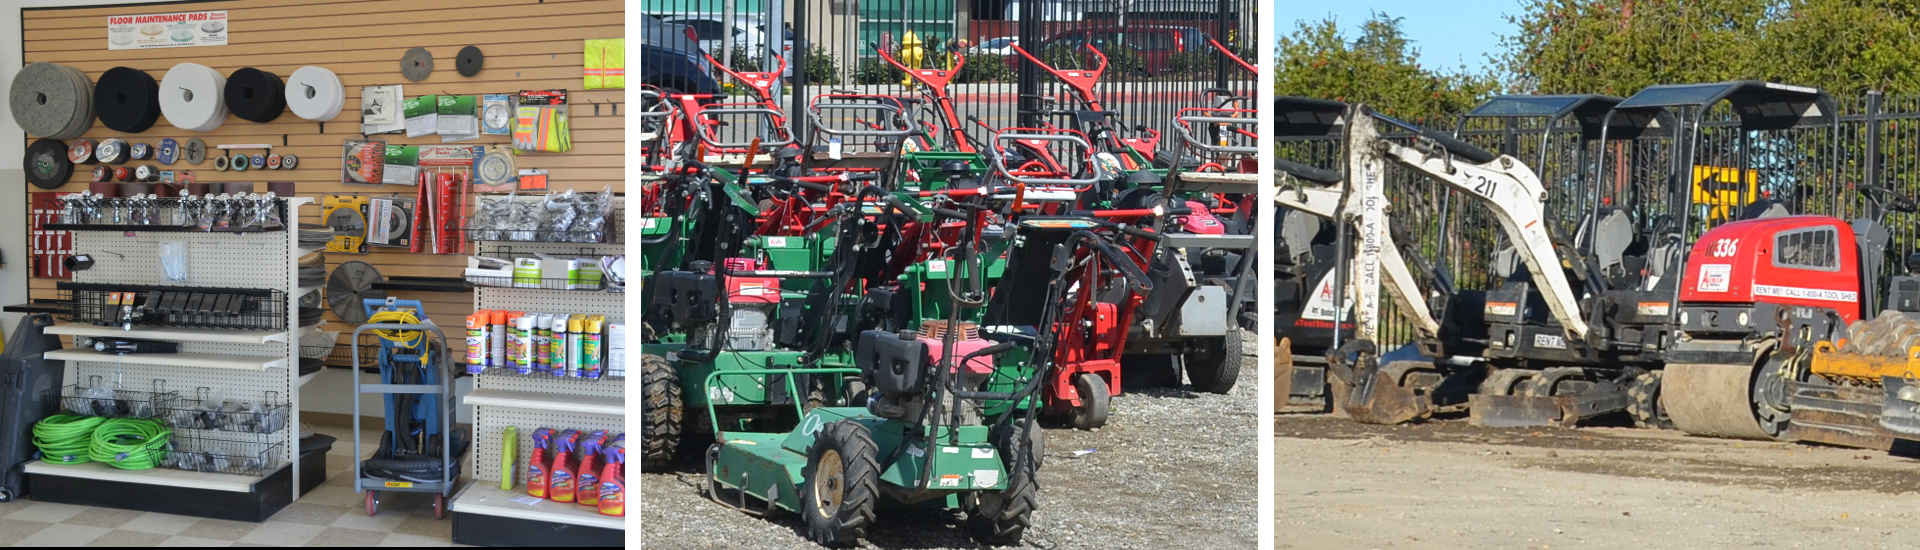 Equipment Rentals in Santa Clara County & the Silicon Valley